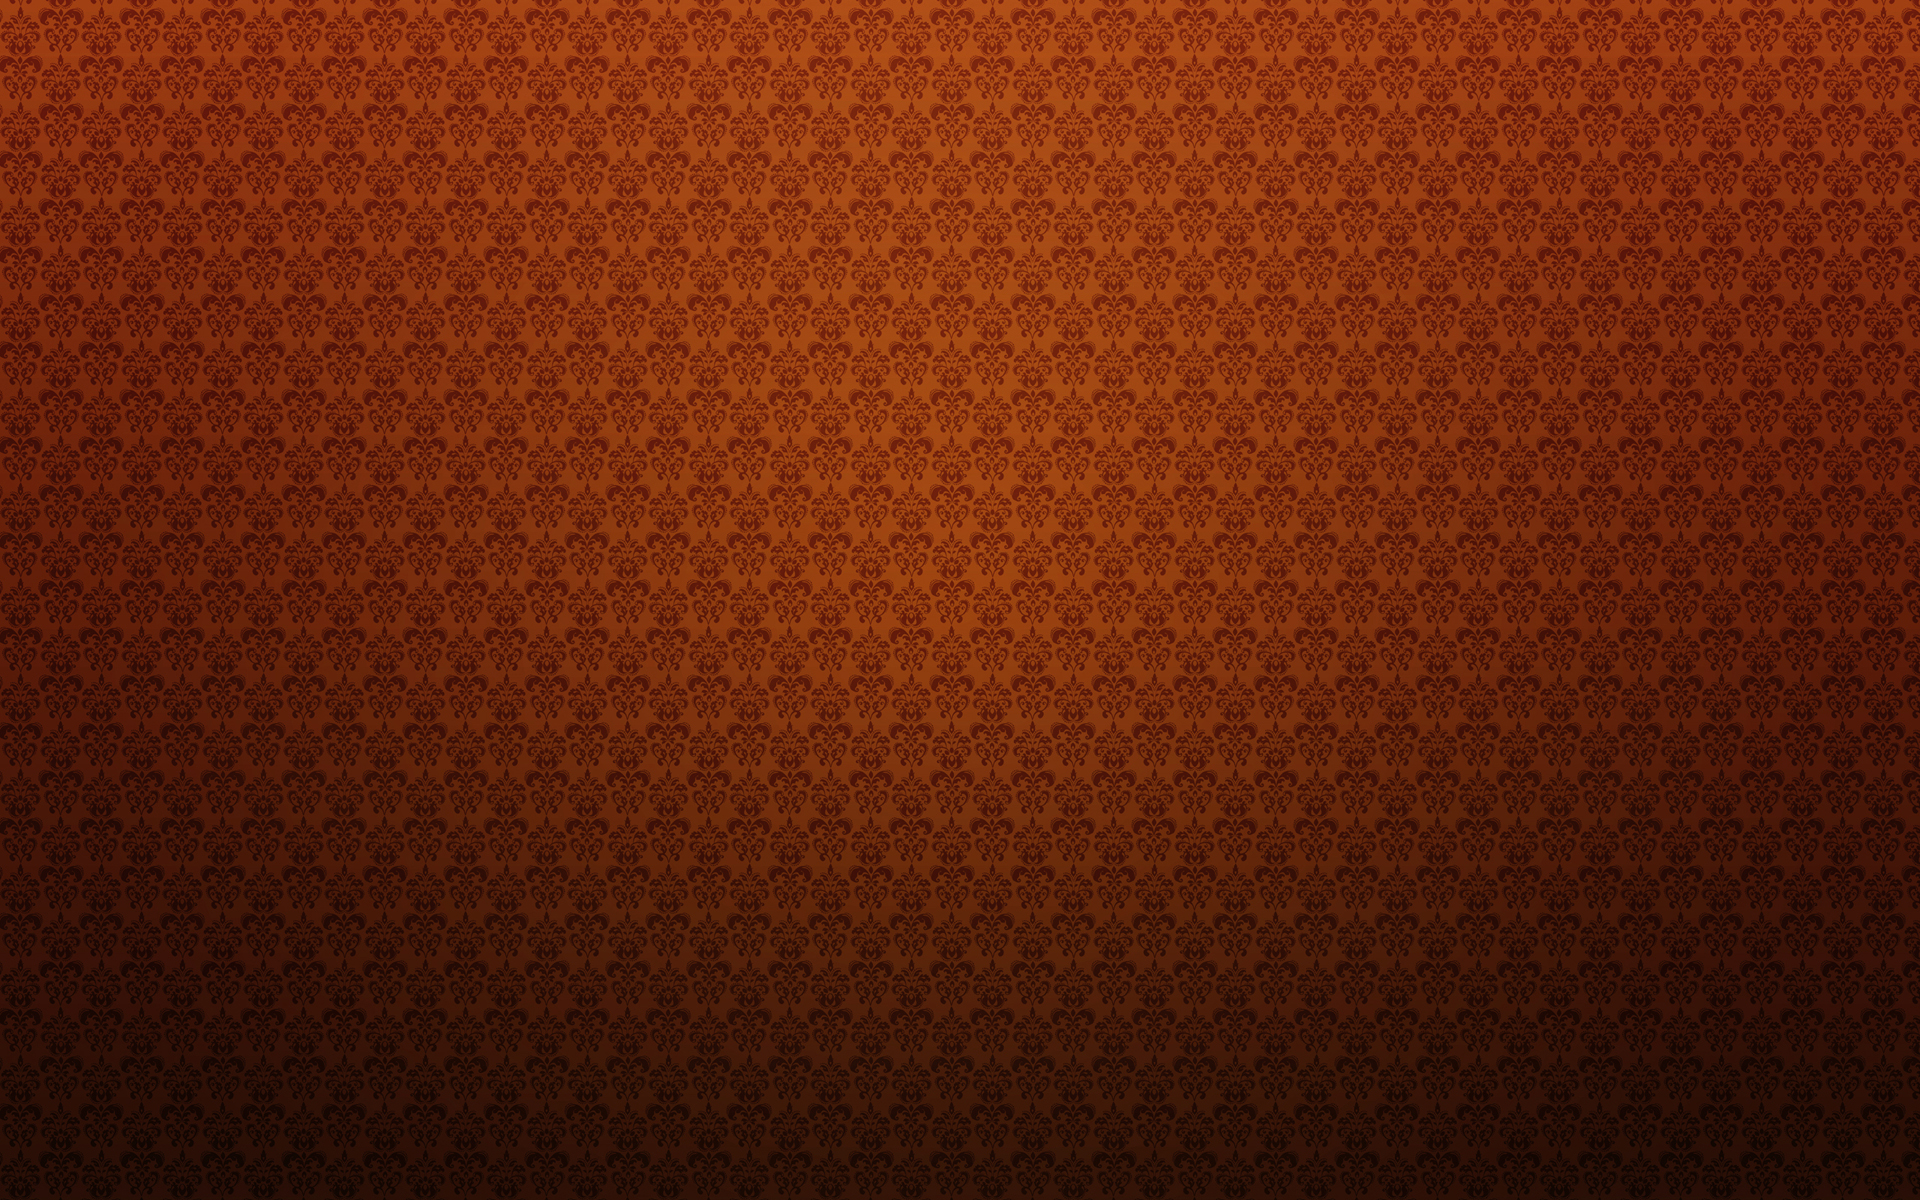 Cheap Wallpaper Border 10 Wallpaper Background Hd With Resolutions 1920x1200